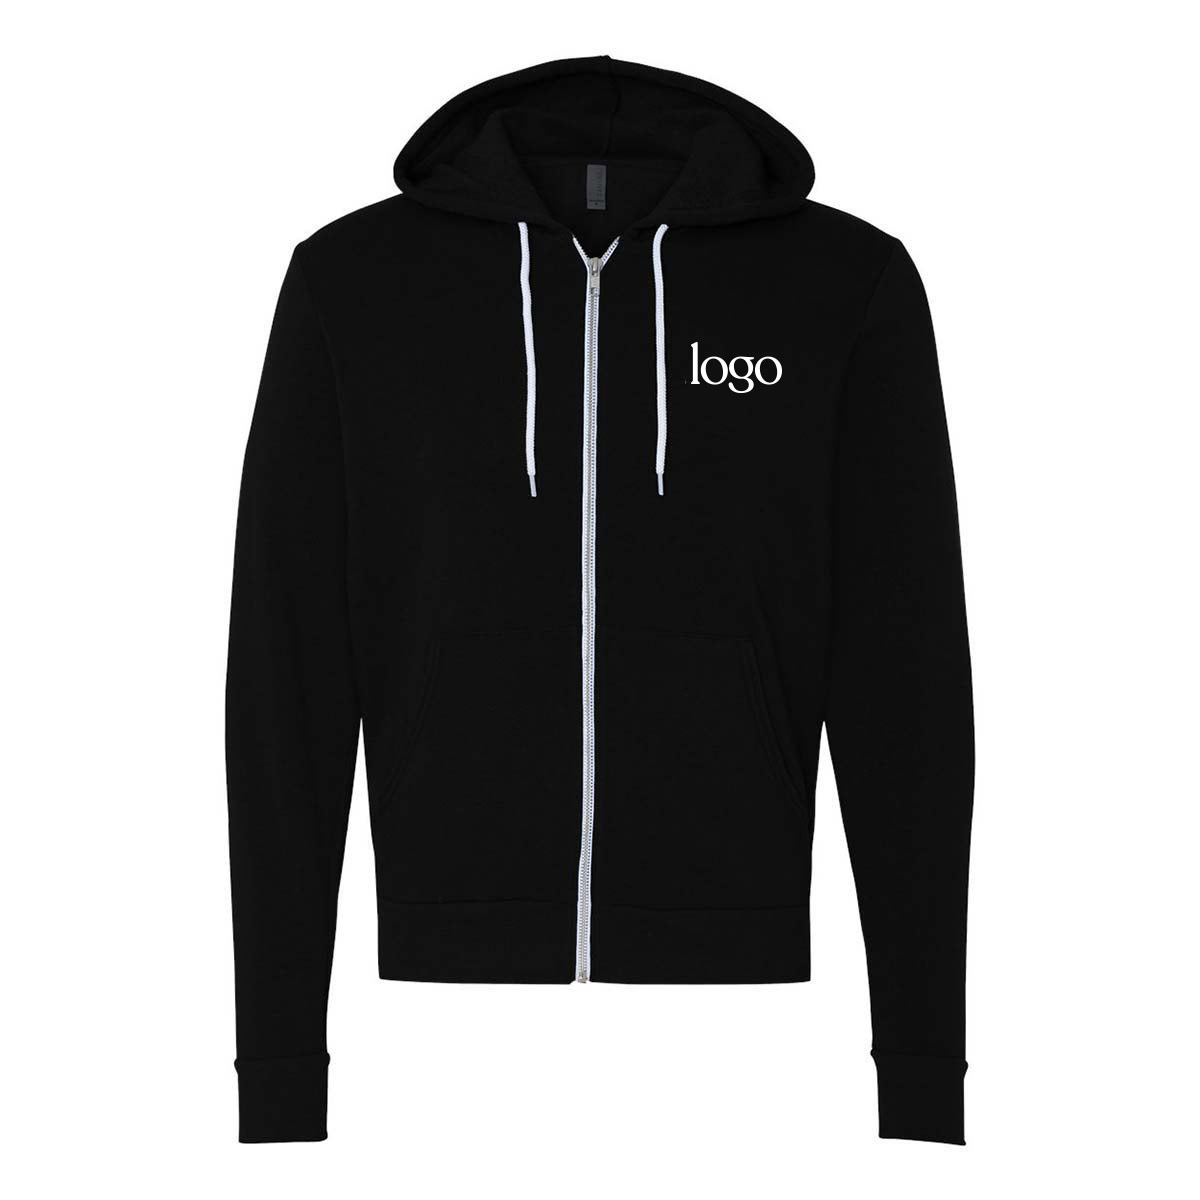 243013 full zip hoodie one color one location imprint